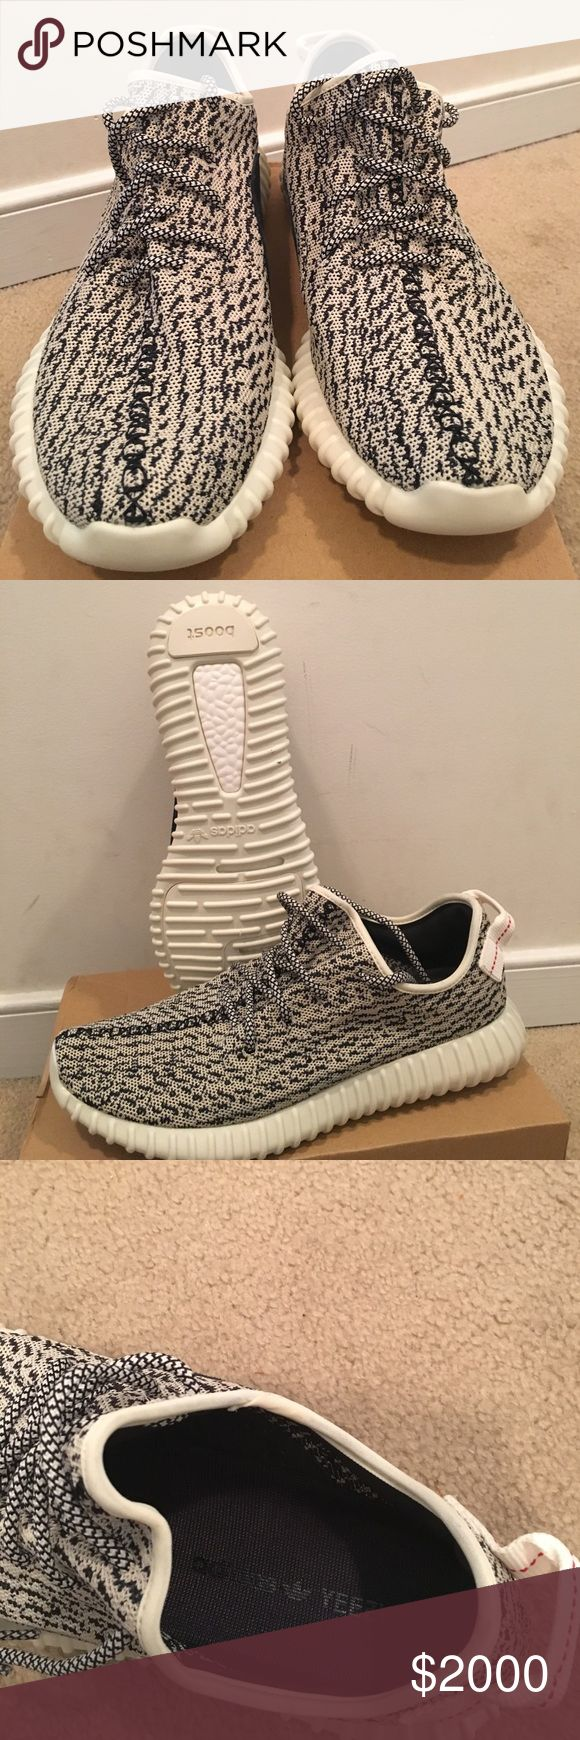 Adidas Yeezy Boost 350 Turtle Dove 11.5 Yeezy Boost 350 Turtle Dove Adidas Shoes Athletic Shoes